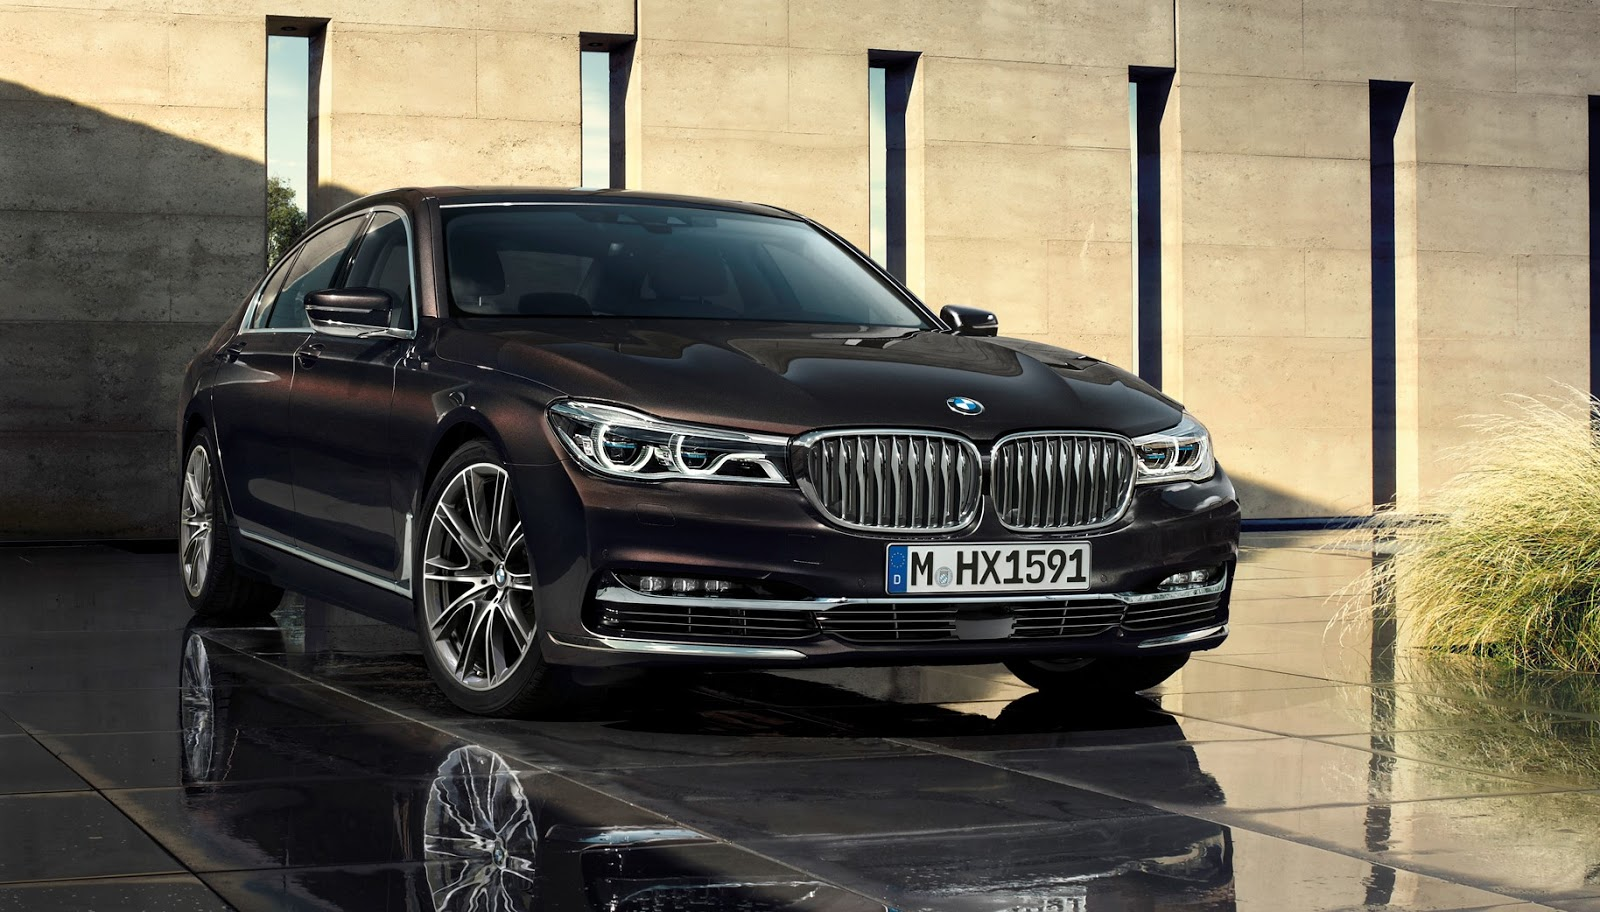 1 2016 bmw 7 series refined revamped restyled and advanced auto review. Black Bedroom Furniture Sets. Home Design Ideas